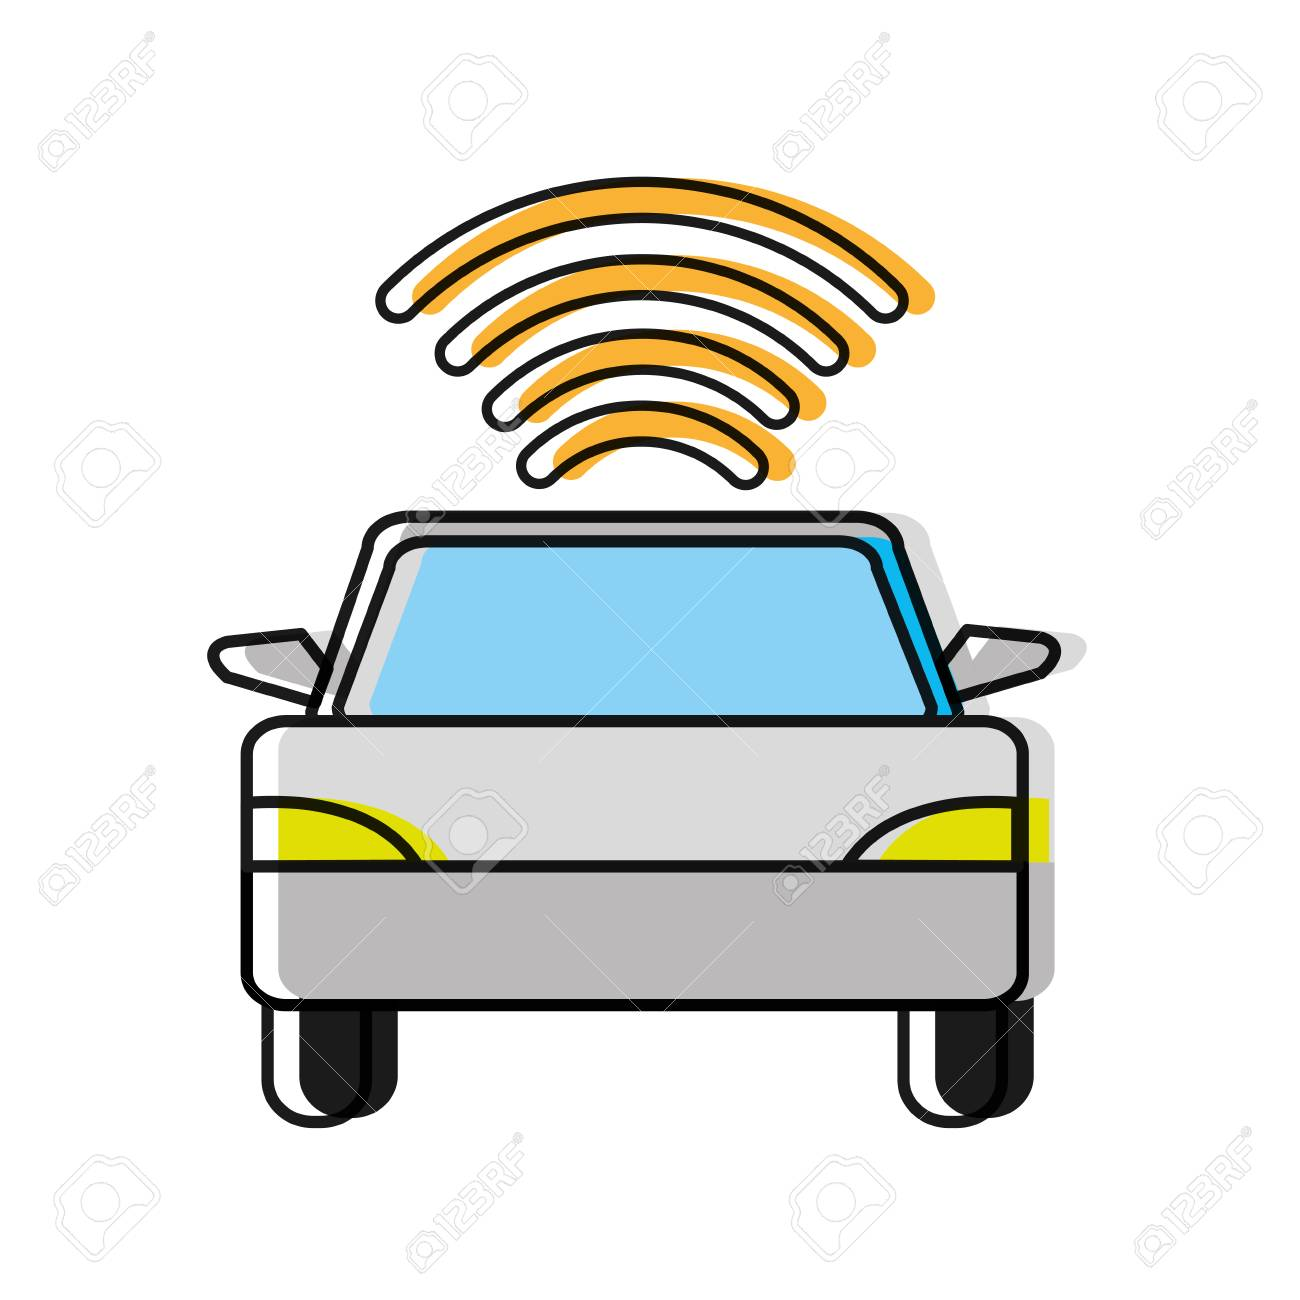 Moved Color Car Transport With Wifi Digital Connection Royalty Free ...